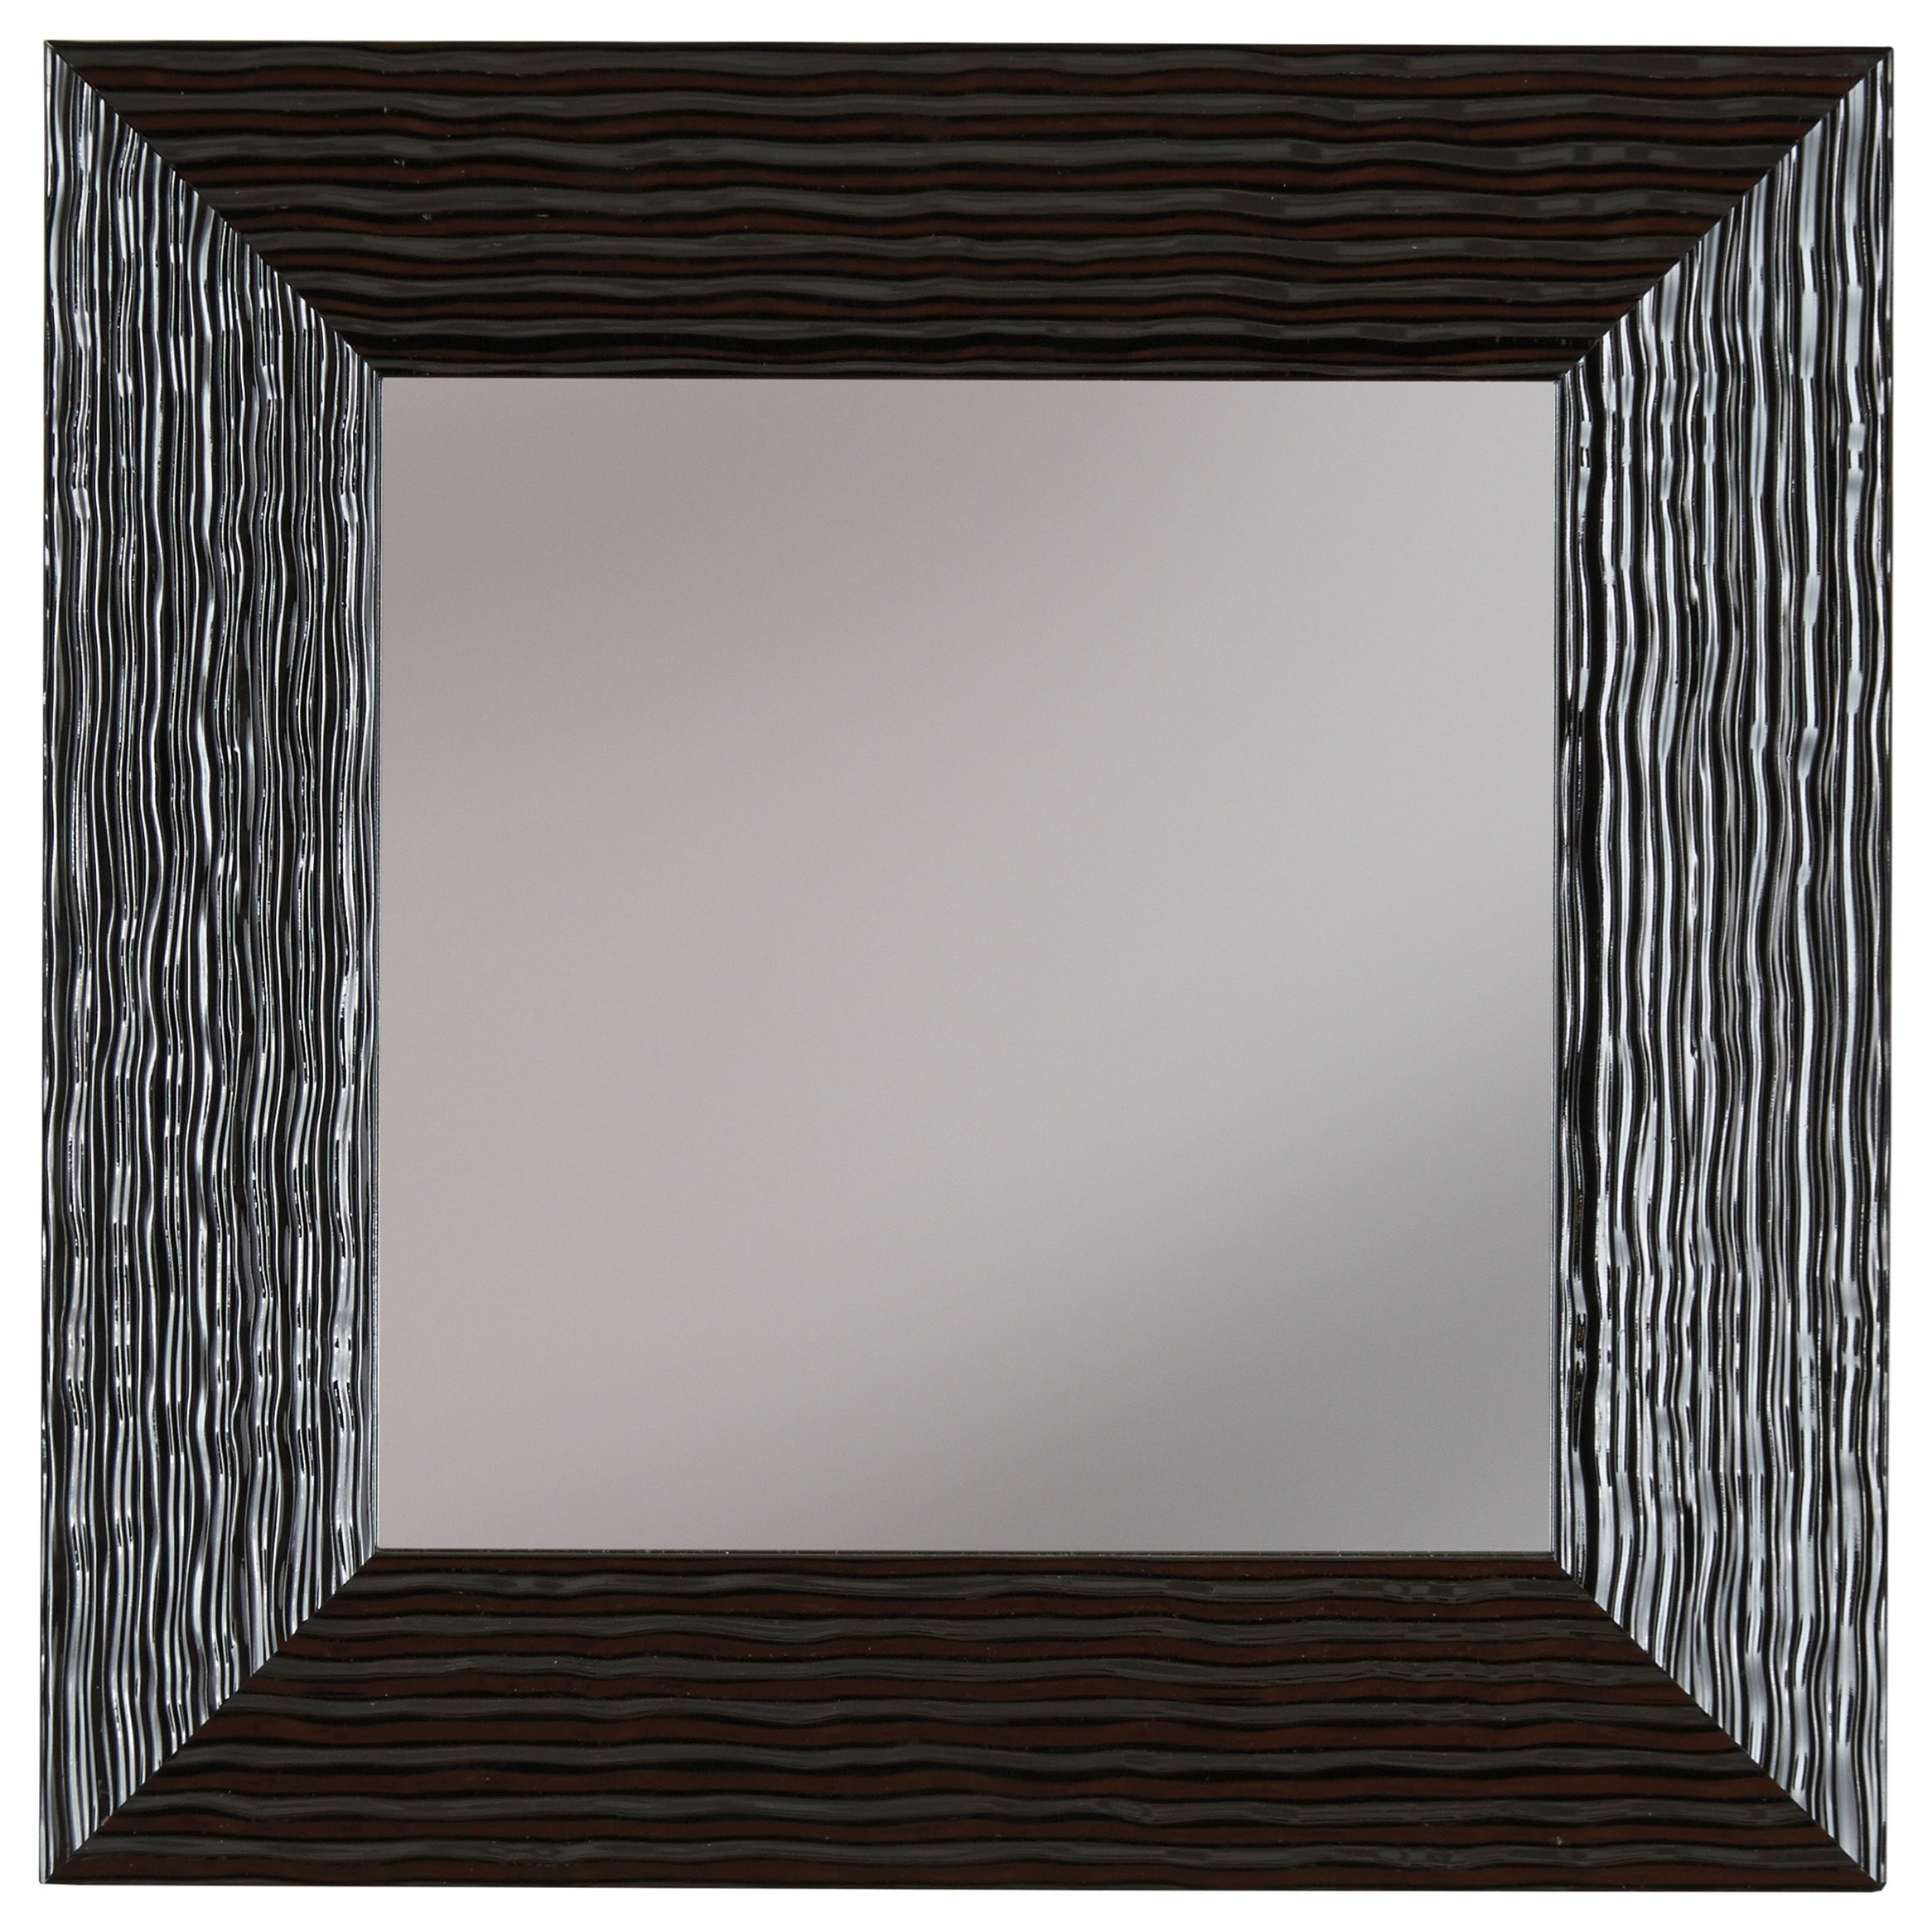 Signature Design by Ashley Accent Mirrors Odelyn Black Wall Mirror - Item Number: A8010012